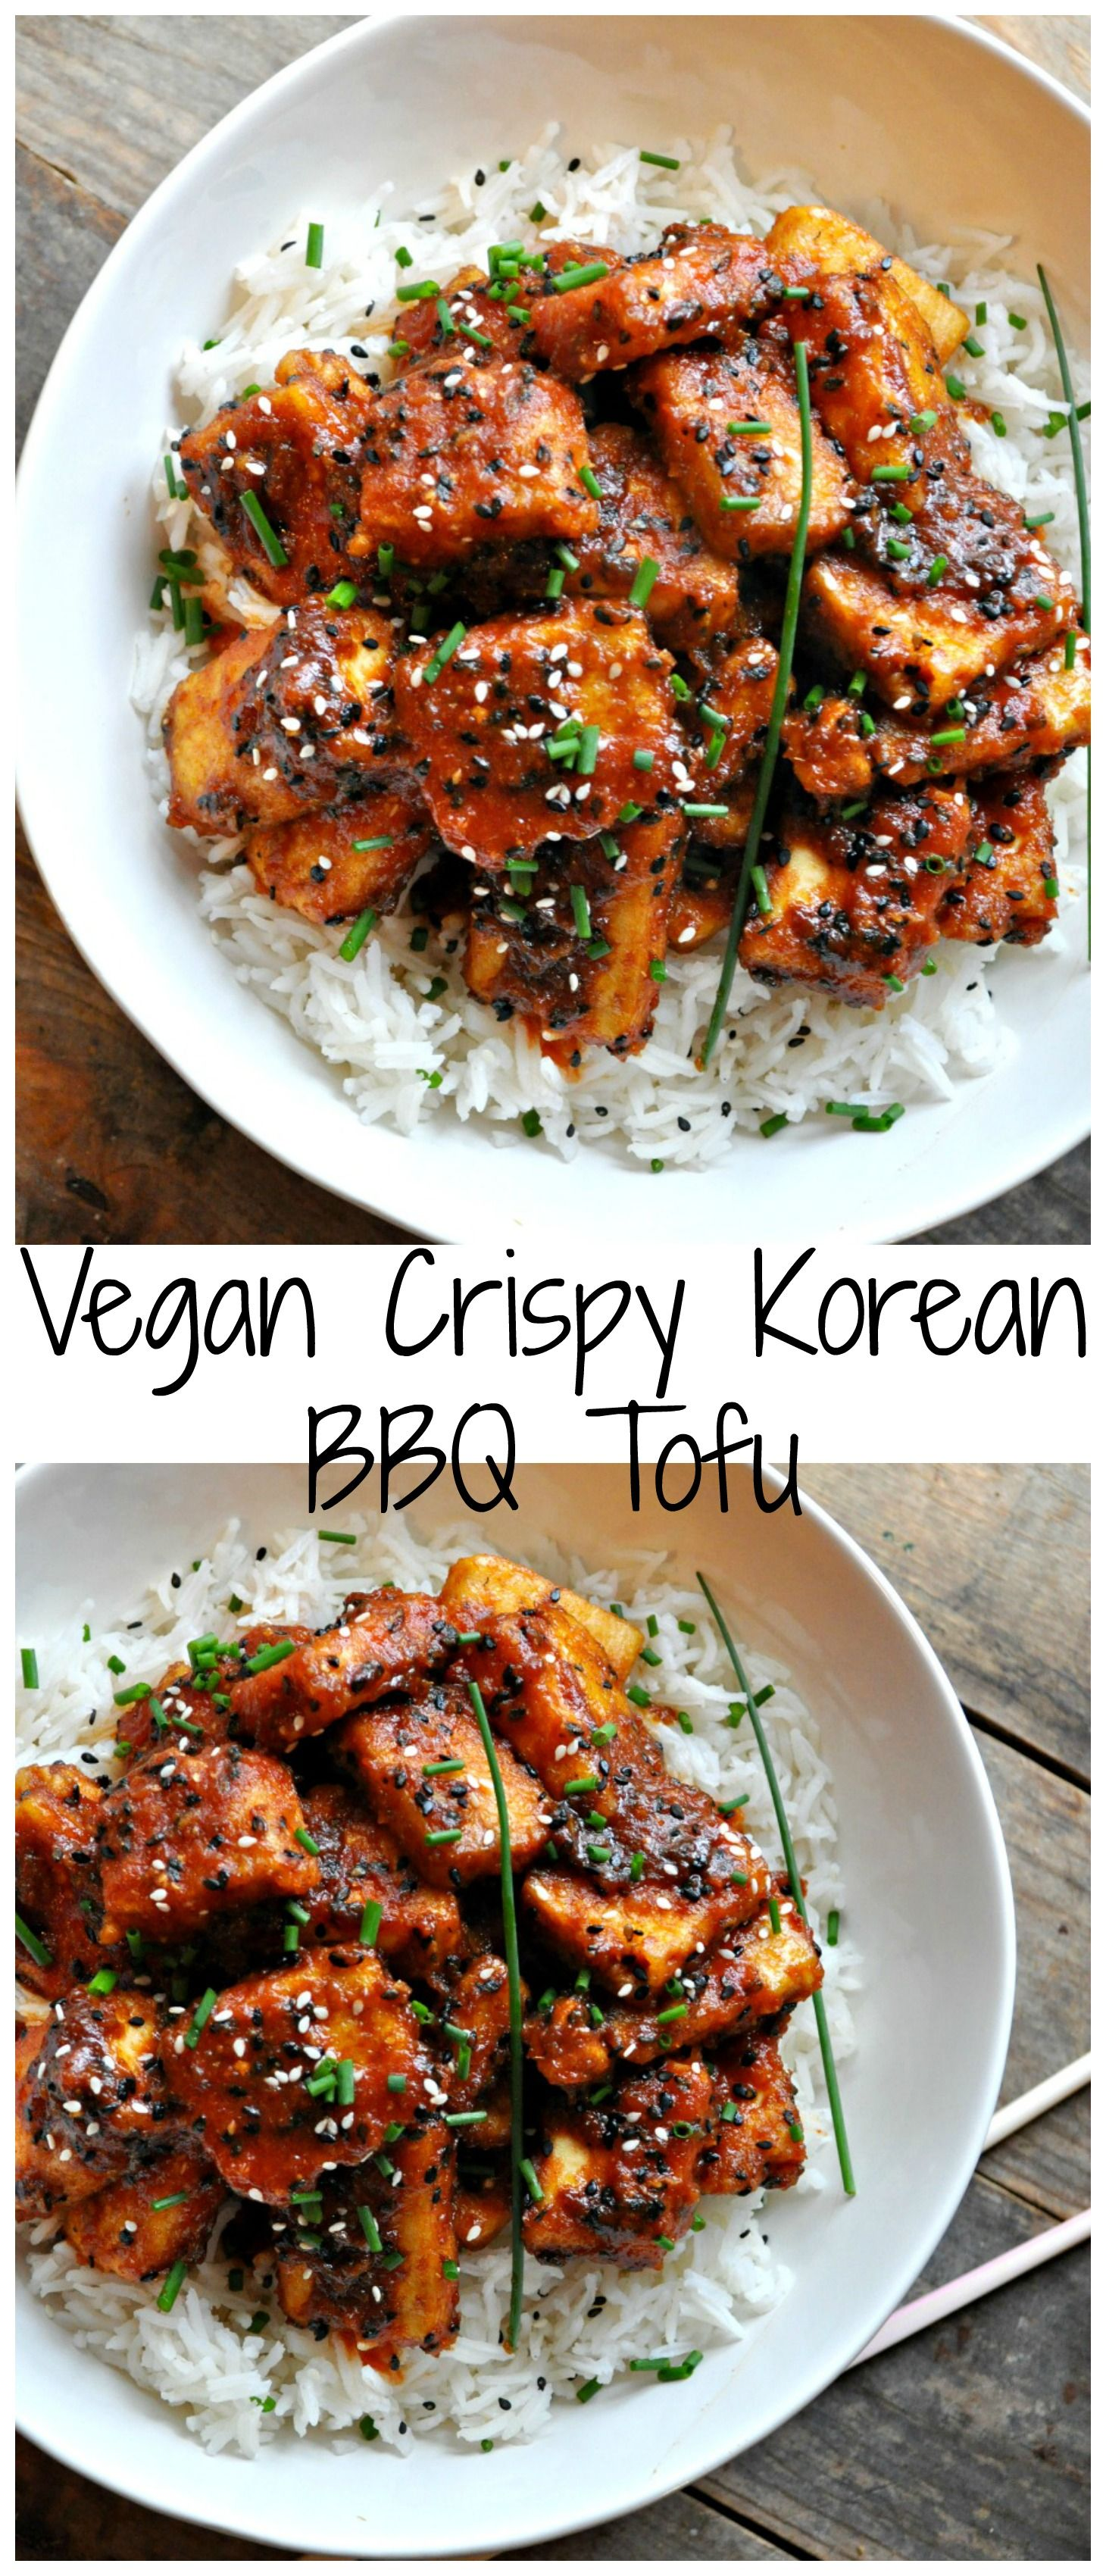 Vegan Crispy Korean BBQ Tofu  - Rabbit and Wolves